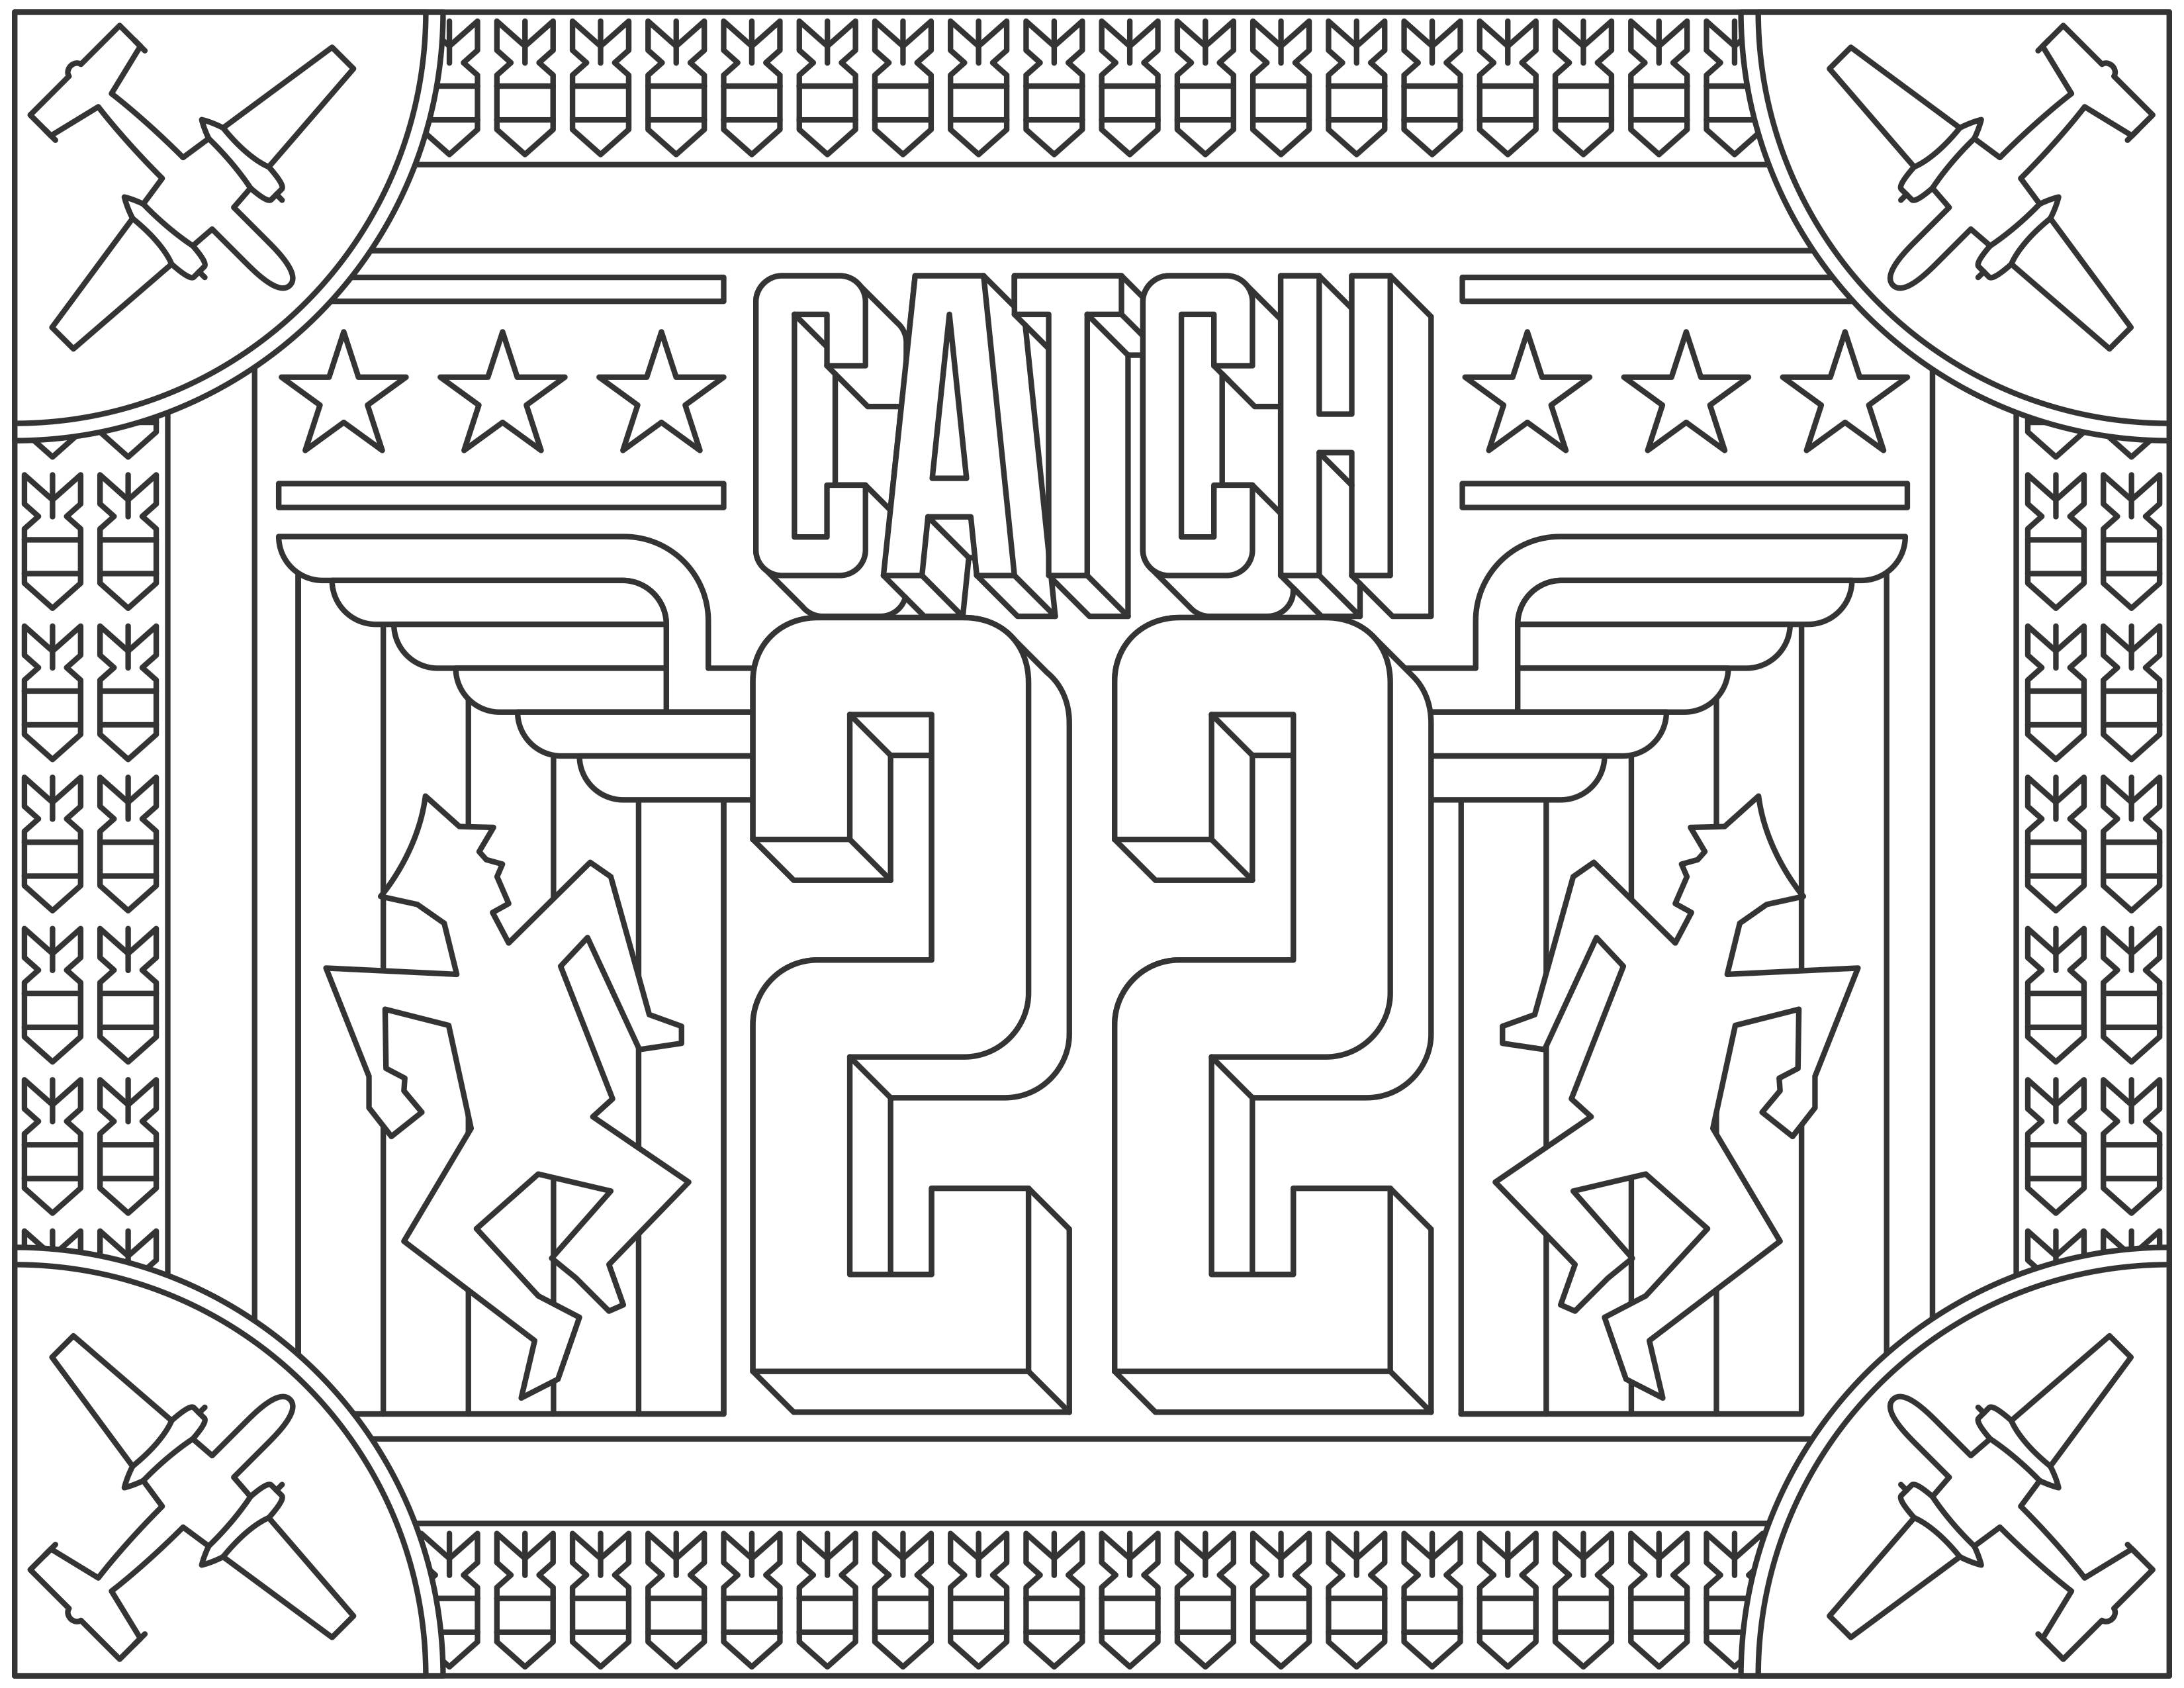 Coloring page inspired by the Movie 'Catch 22', for the website Readers.com. From the gallery : Movie Posters Source :  readers